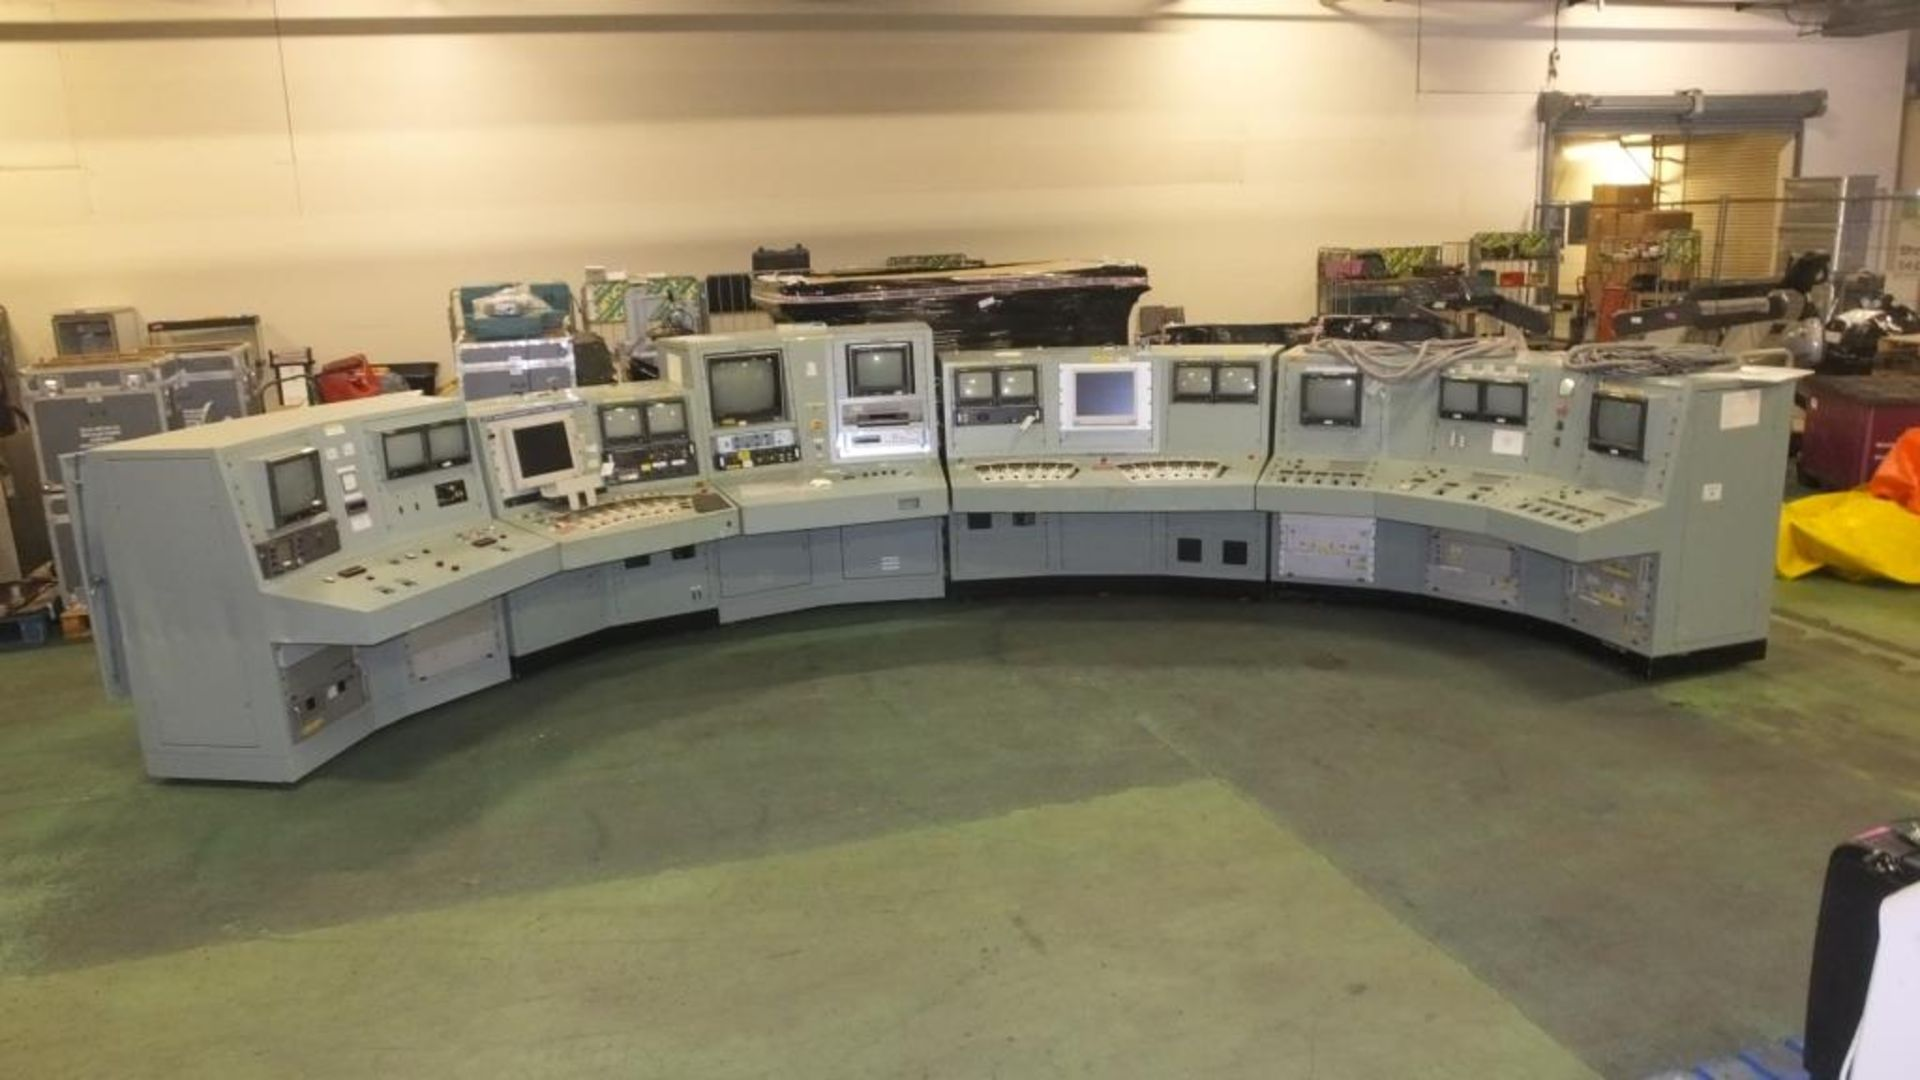 Ex Nuclear Plant Reactor Control / Monitoring System - Image 2 of 25